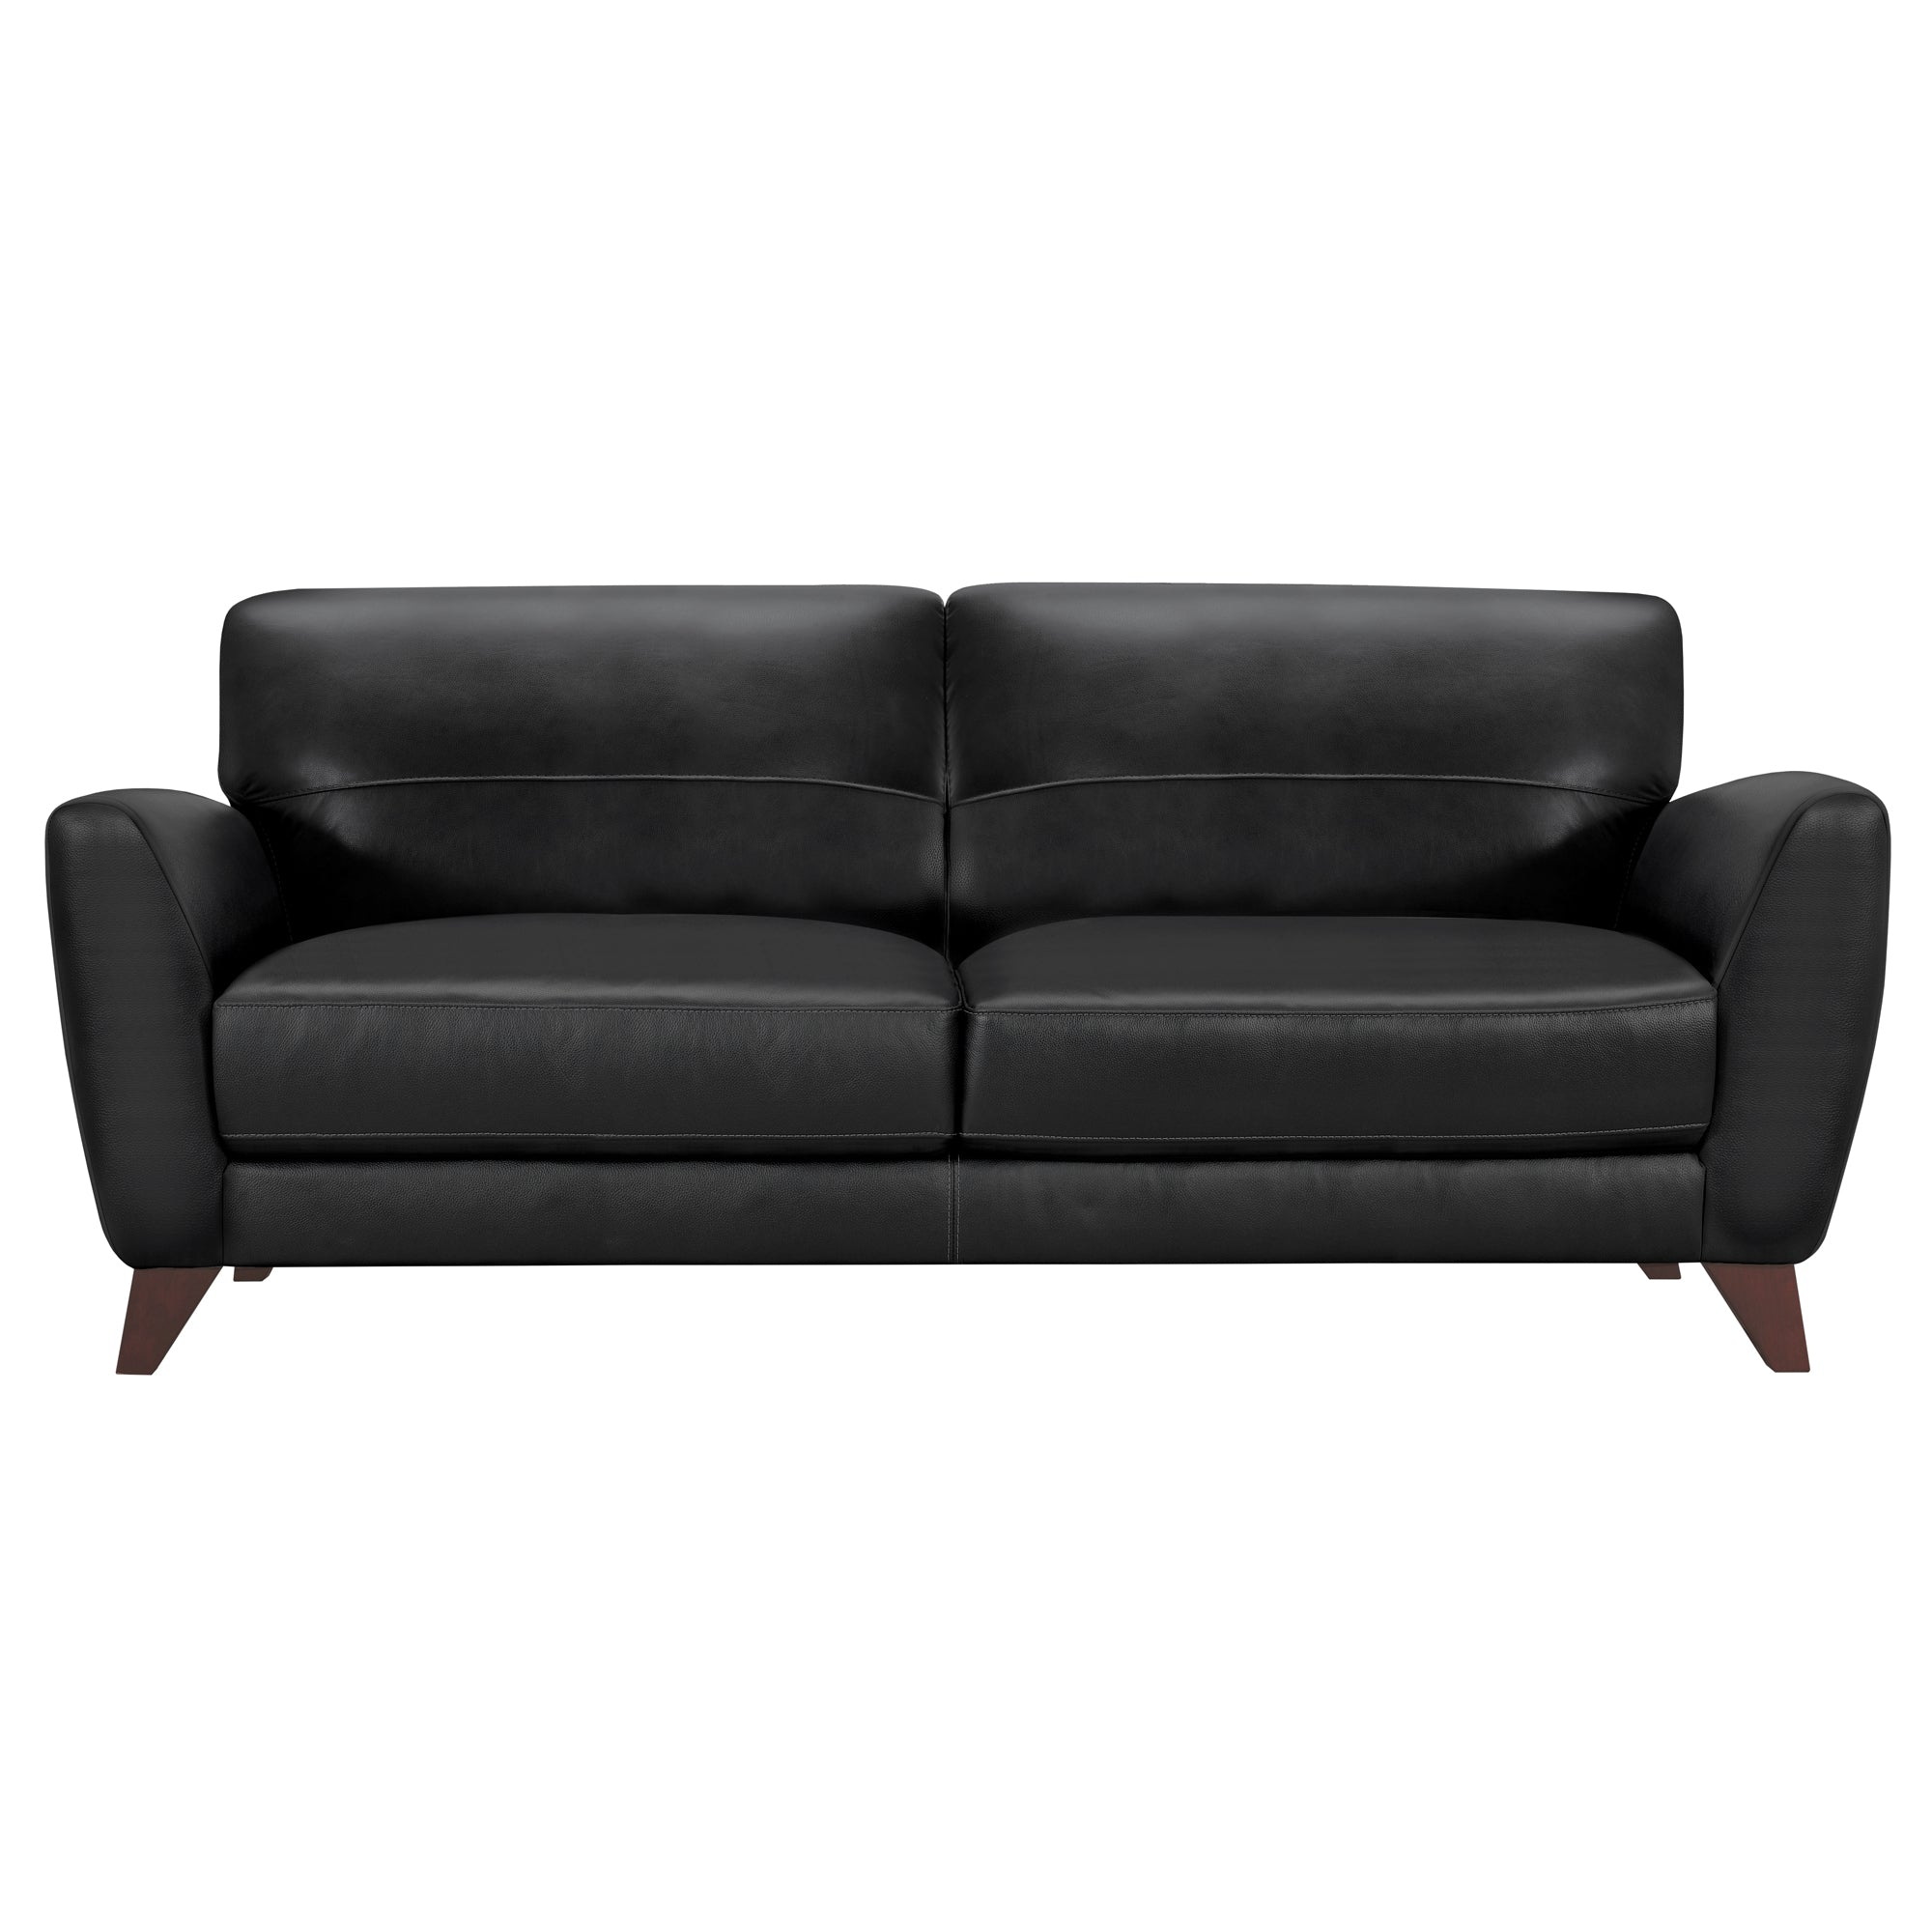 Contemporary Sofa Genuine Black Leather Brown Wood Legs Jedd 361 Product Photo